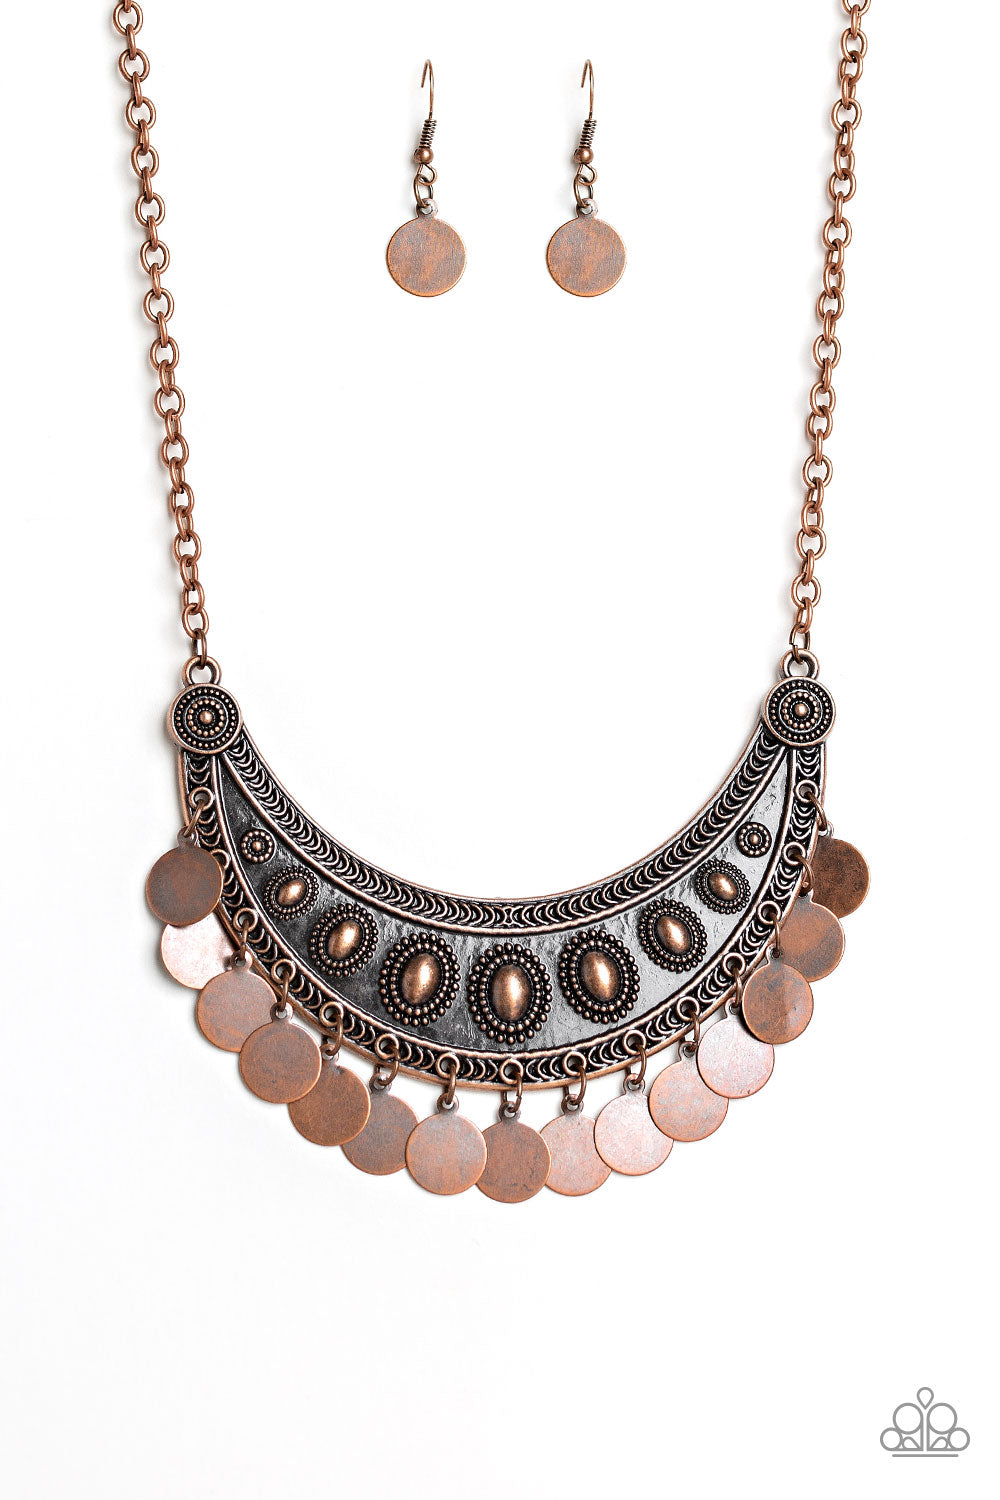 five-dollar-jewelry-chimes-up-copper-necklace-paparazzi-accessories